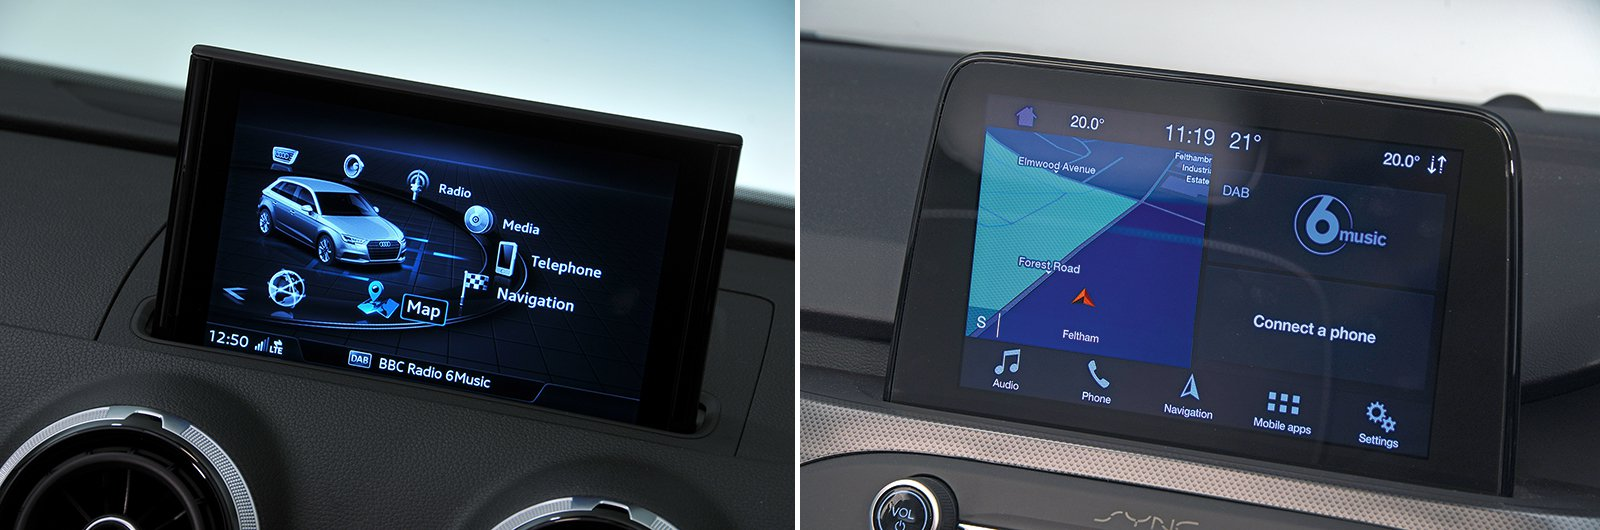 New Ford Focus vs used Audi A3 infotainment